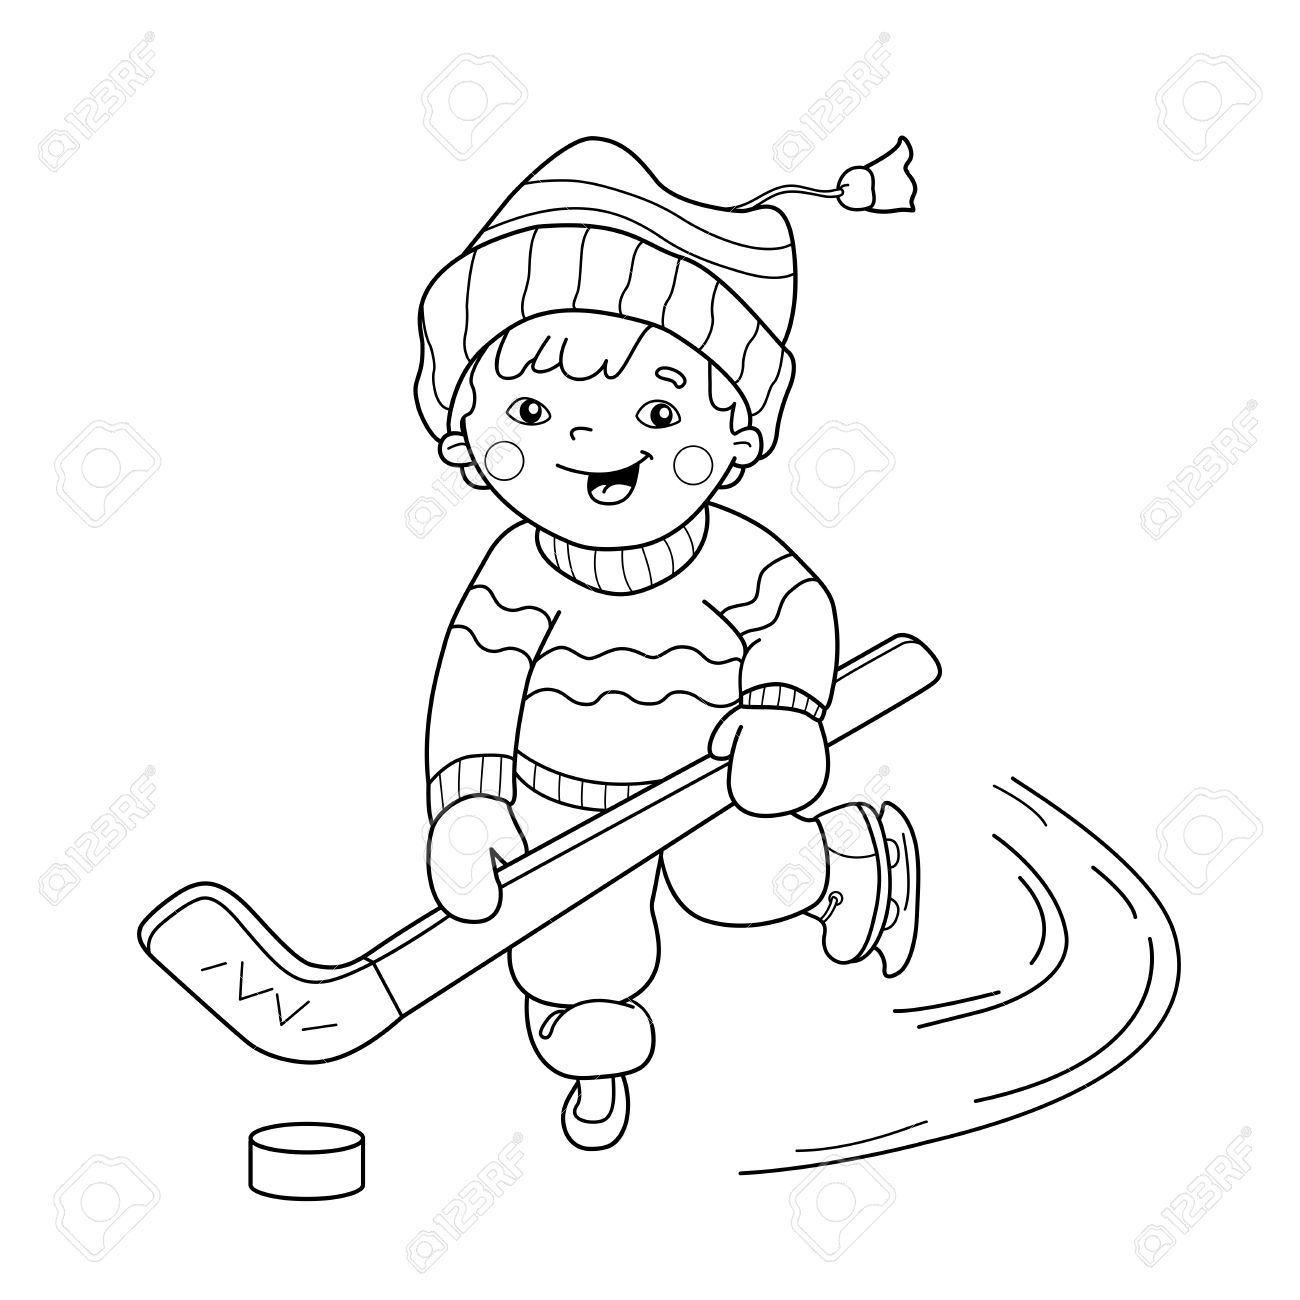 Famous Sports Coloring Page Image Collection Documentation